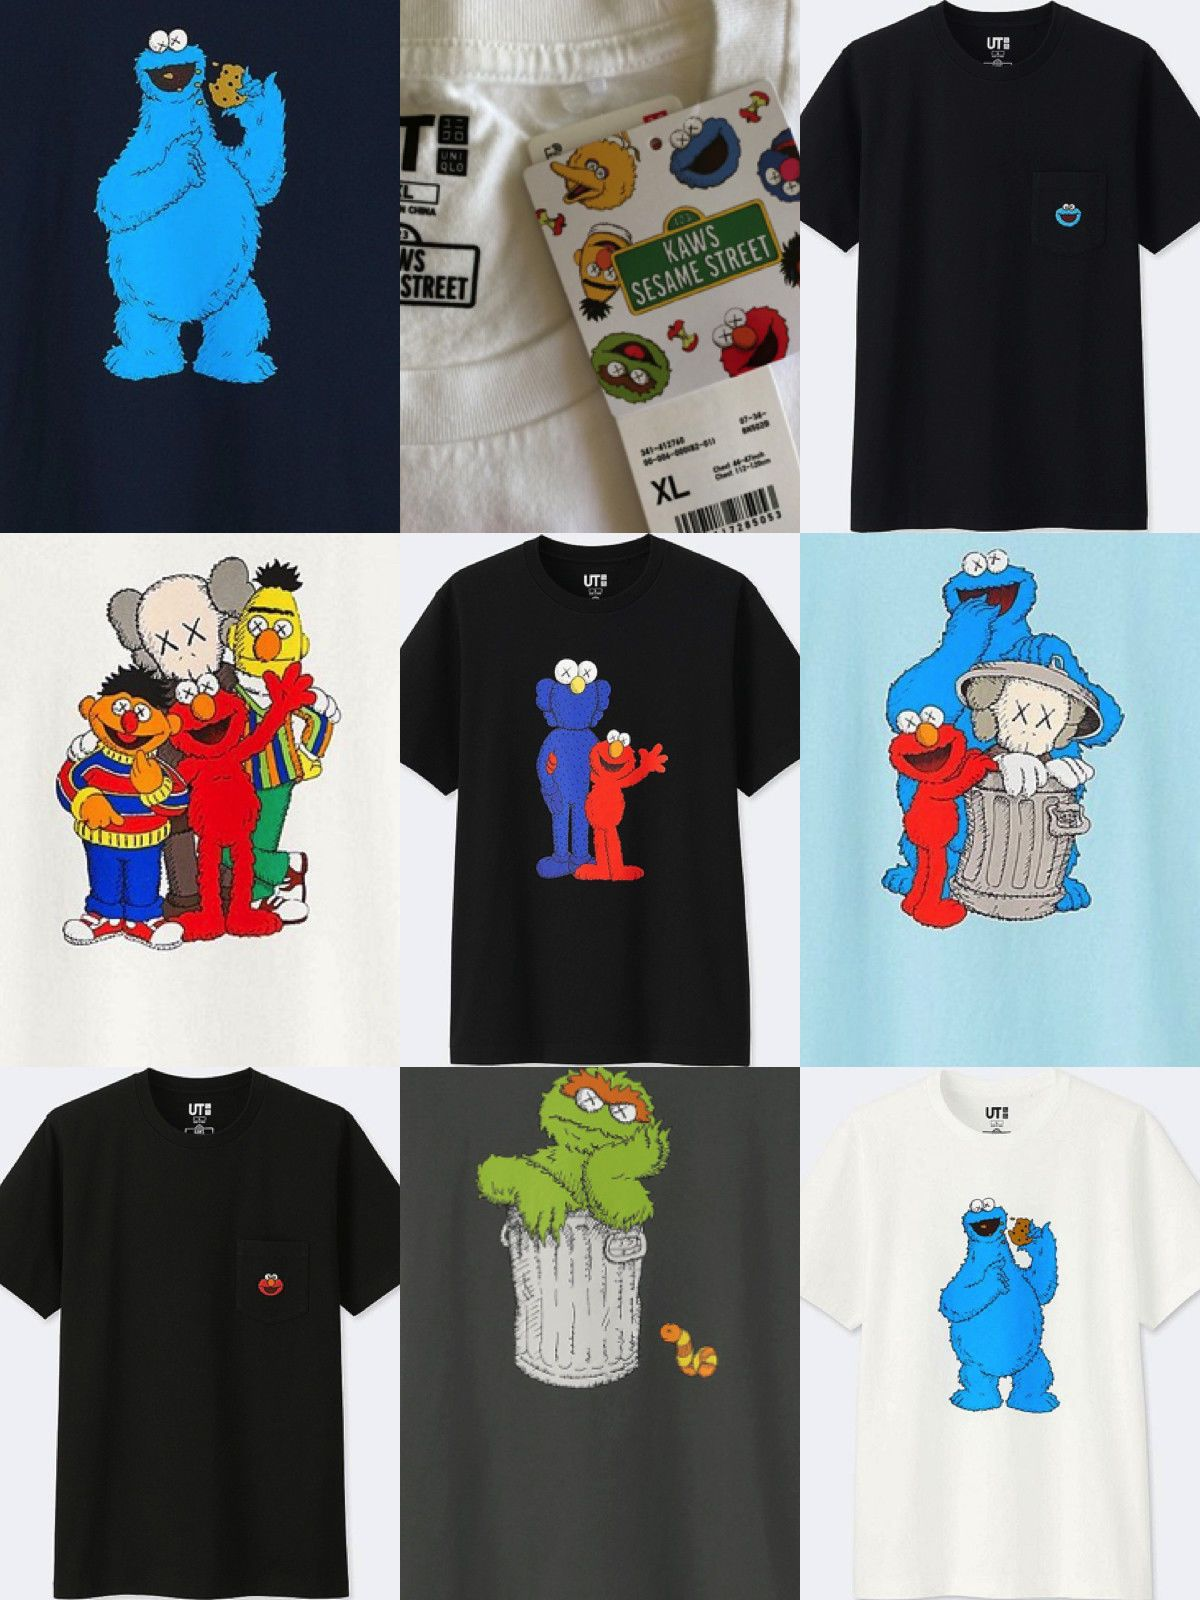 0b59620c30a Details about Uniqlo KAWS - SESAME ST - Limited Edition - New with ...